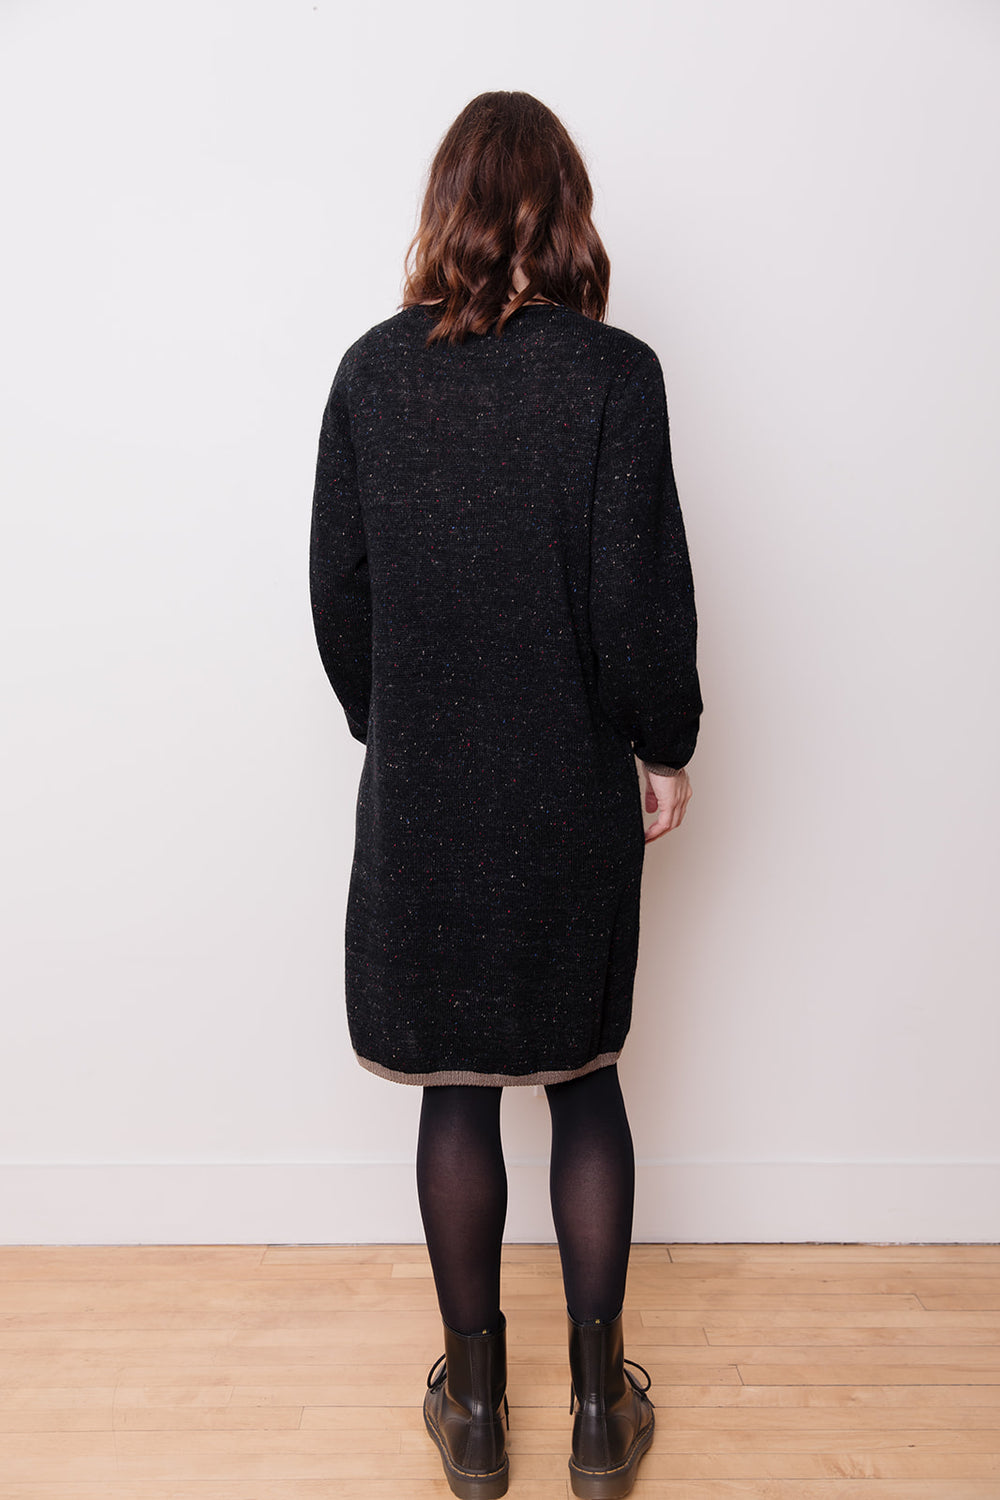 Knit Dress with Pockets, Black